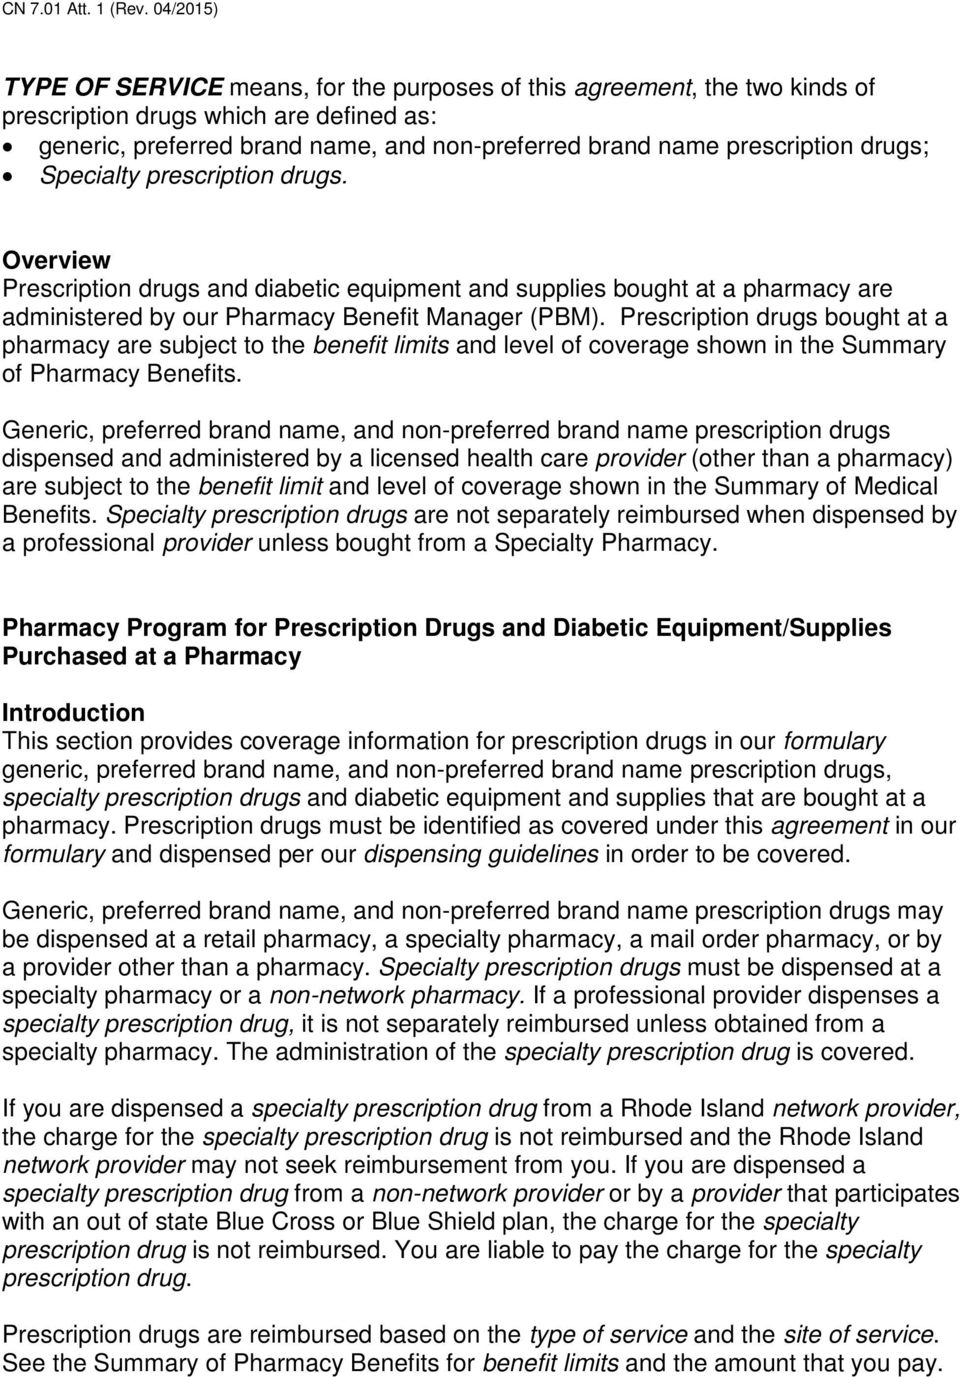 Prescription drugs bought at a pharmacy are subject to the benefit limits and level of coverage shown in the Summary of Pharmacy Benefits.